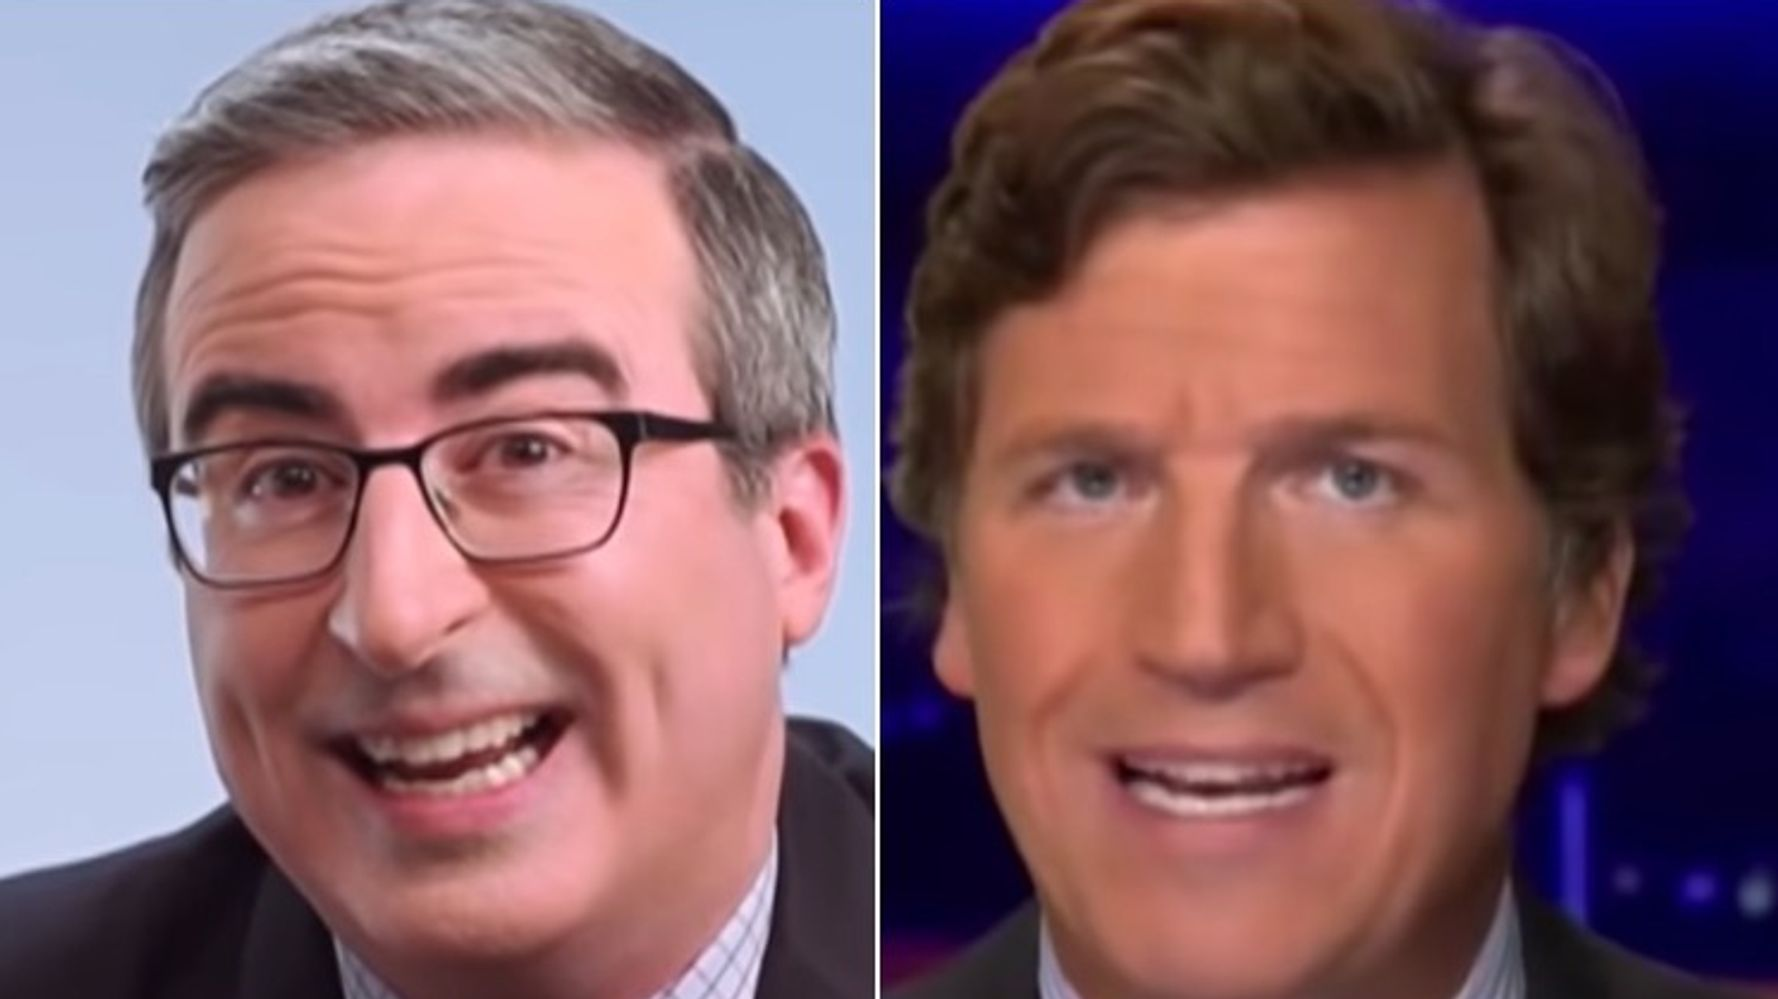 John Oliver Outs Tucker Carlson As White Supremacist In Damning Segment